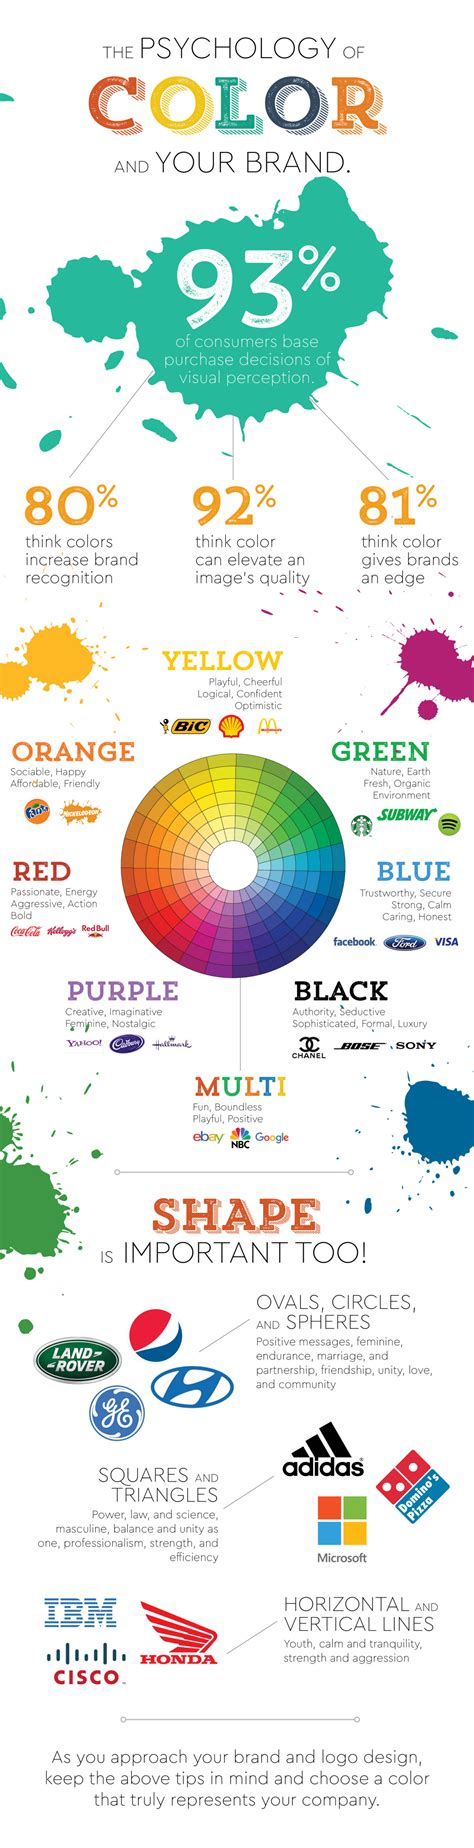 color psychology the psychology of colors in logo and brand design color